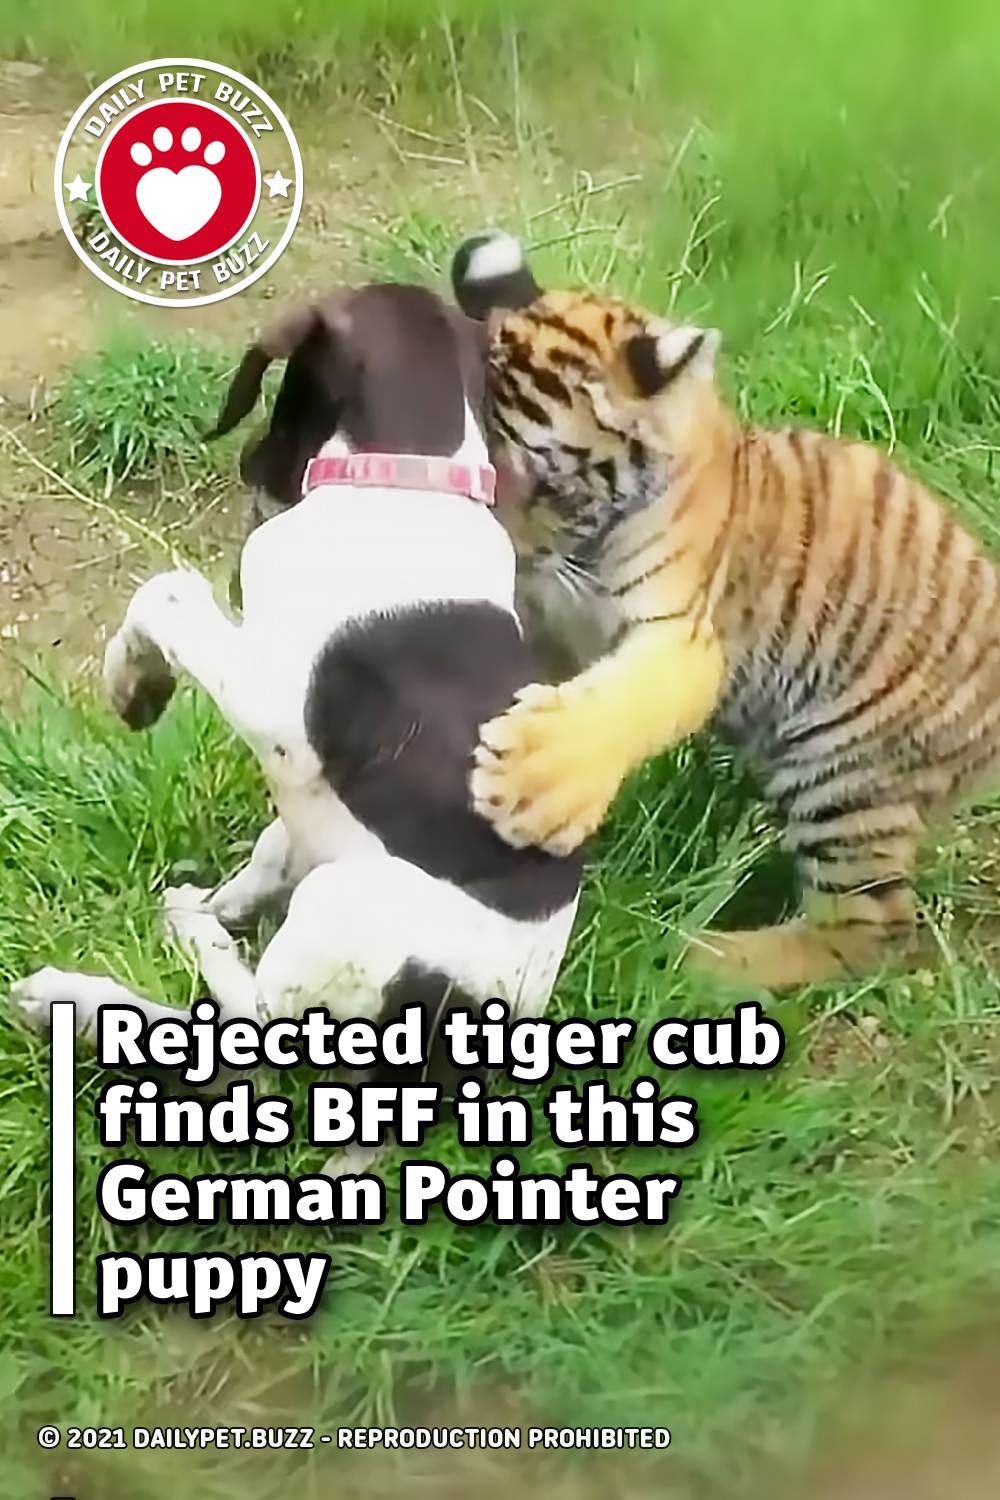 Rejected tiger cub finds BFF in this German Pointer puppy